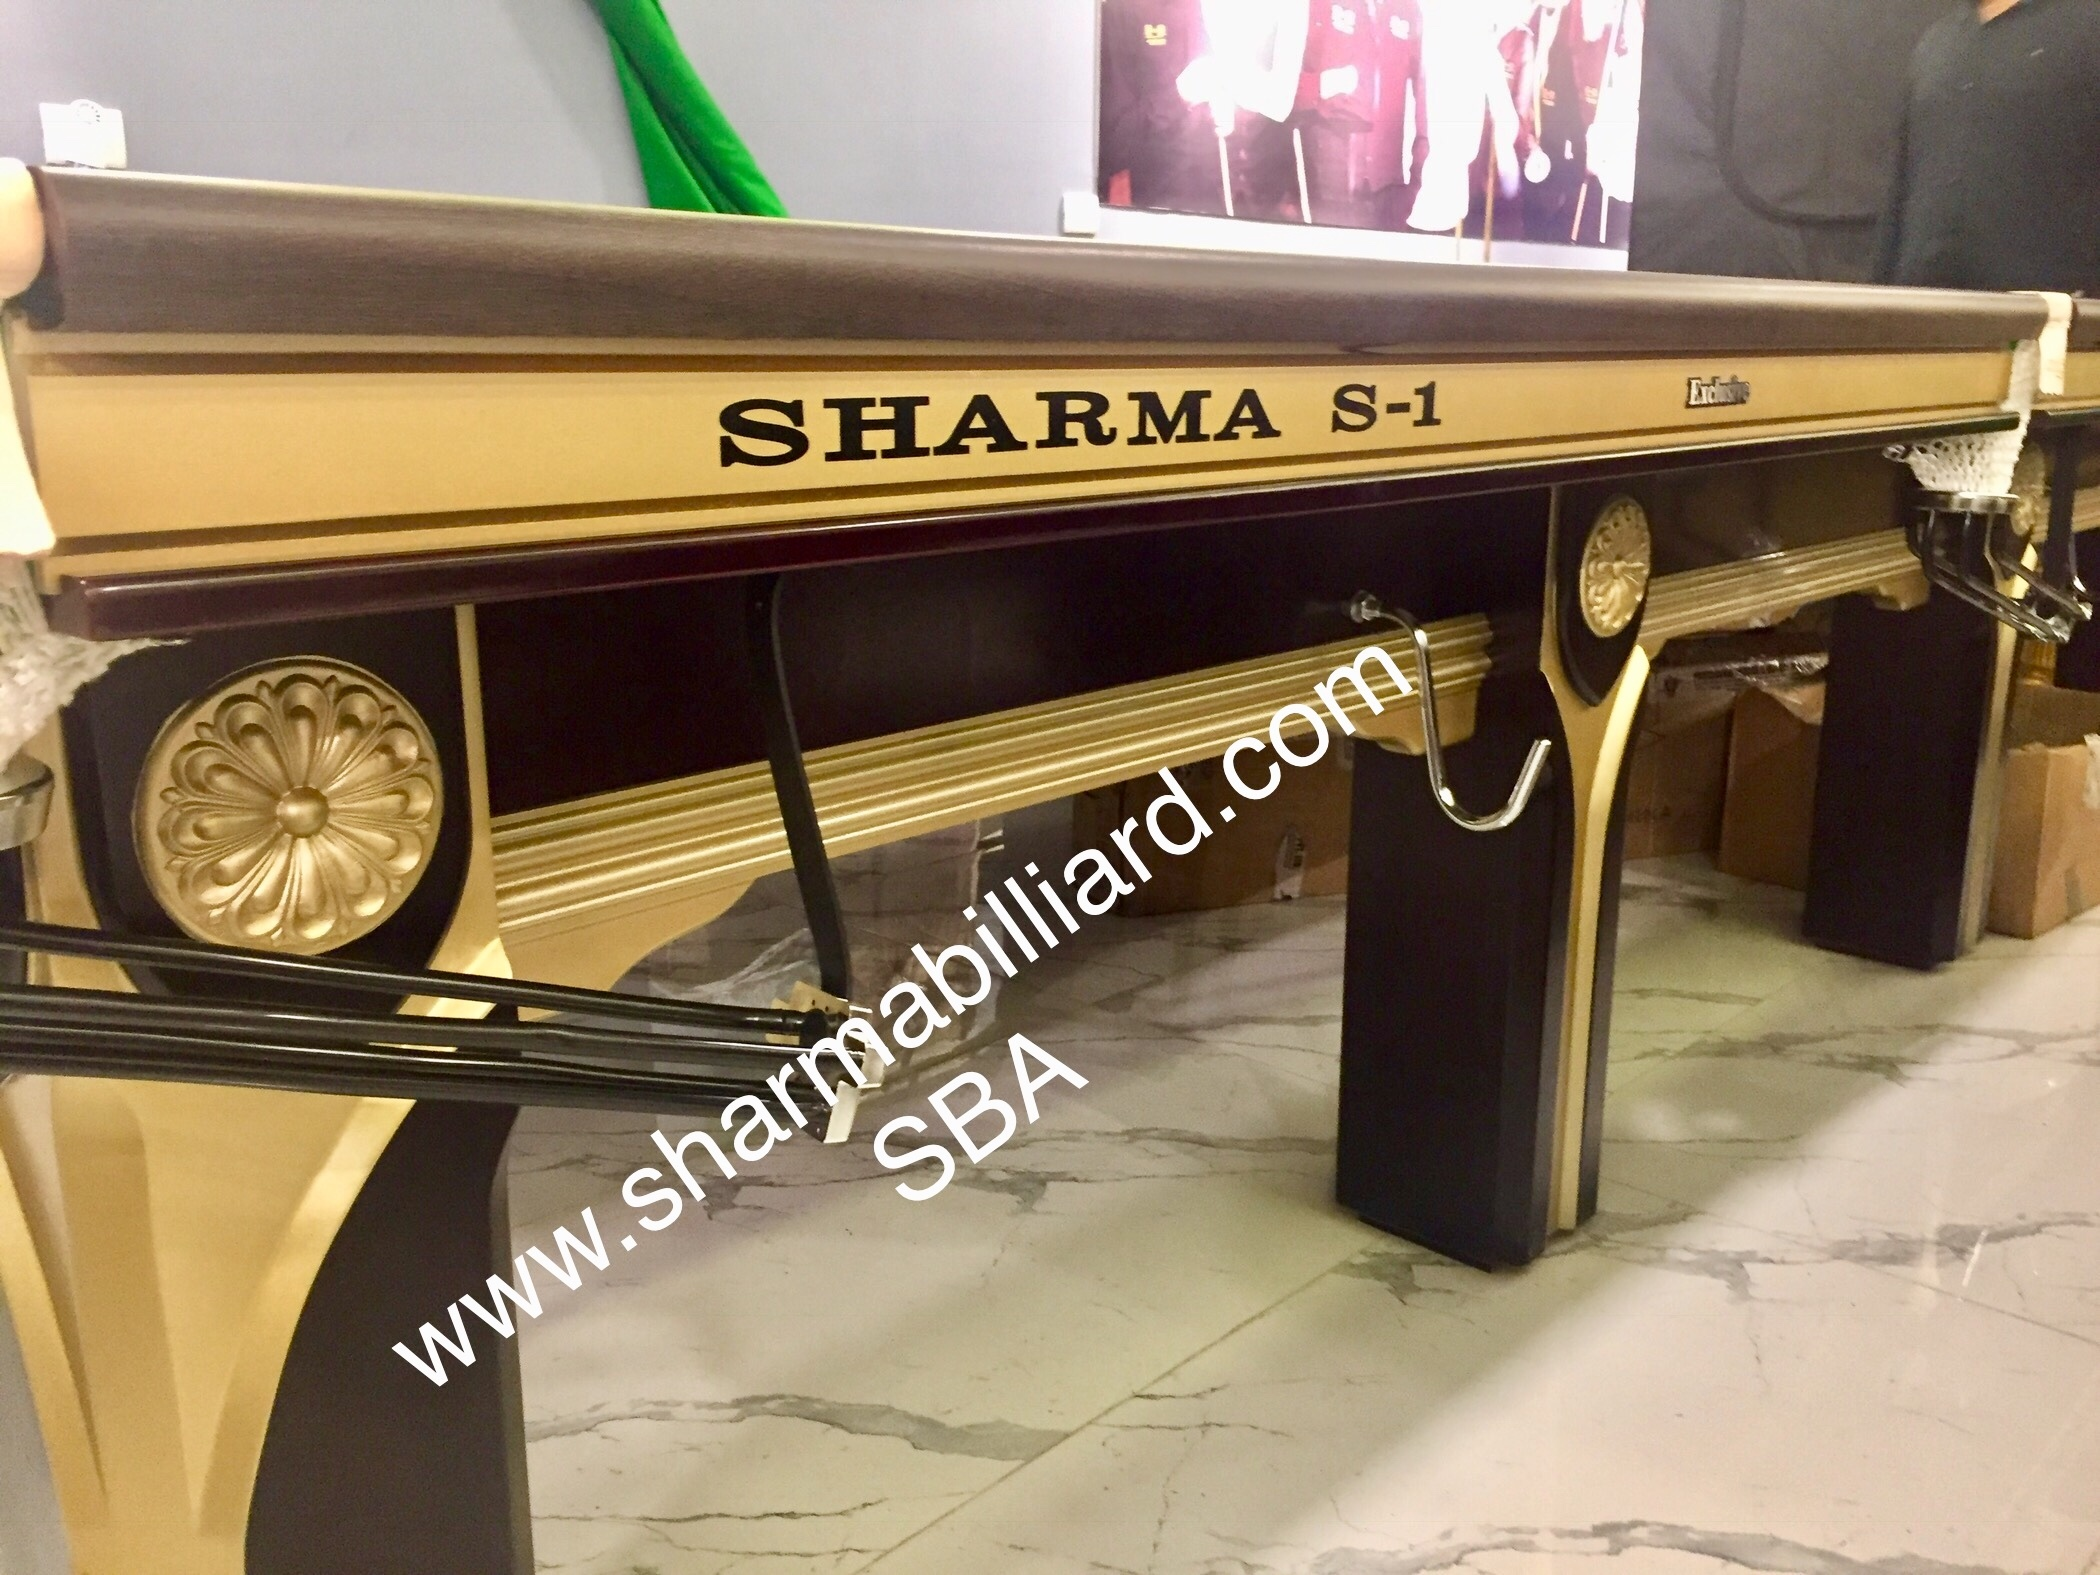 Sharma S-1 Exclusive (BFSI Approved)